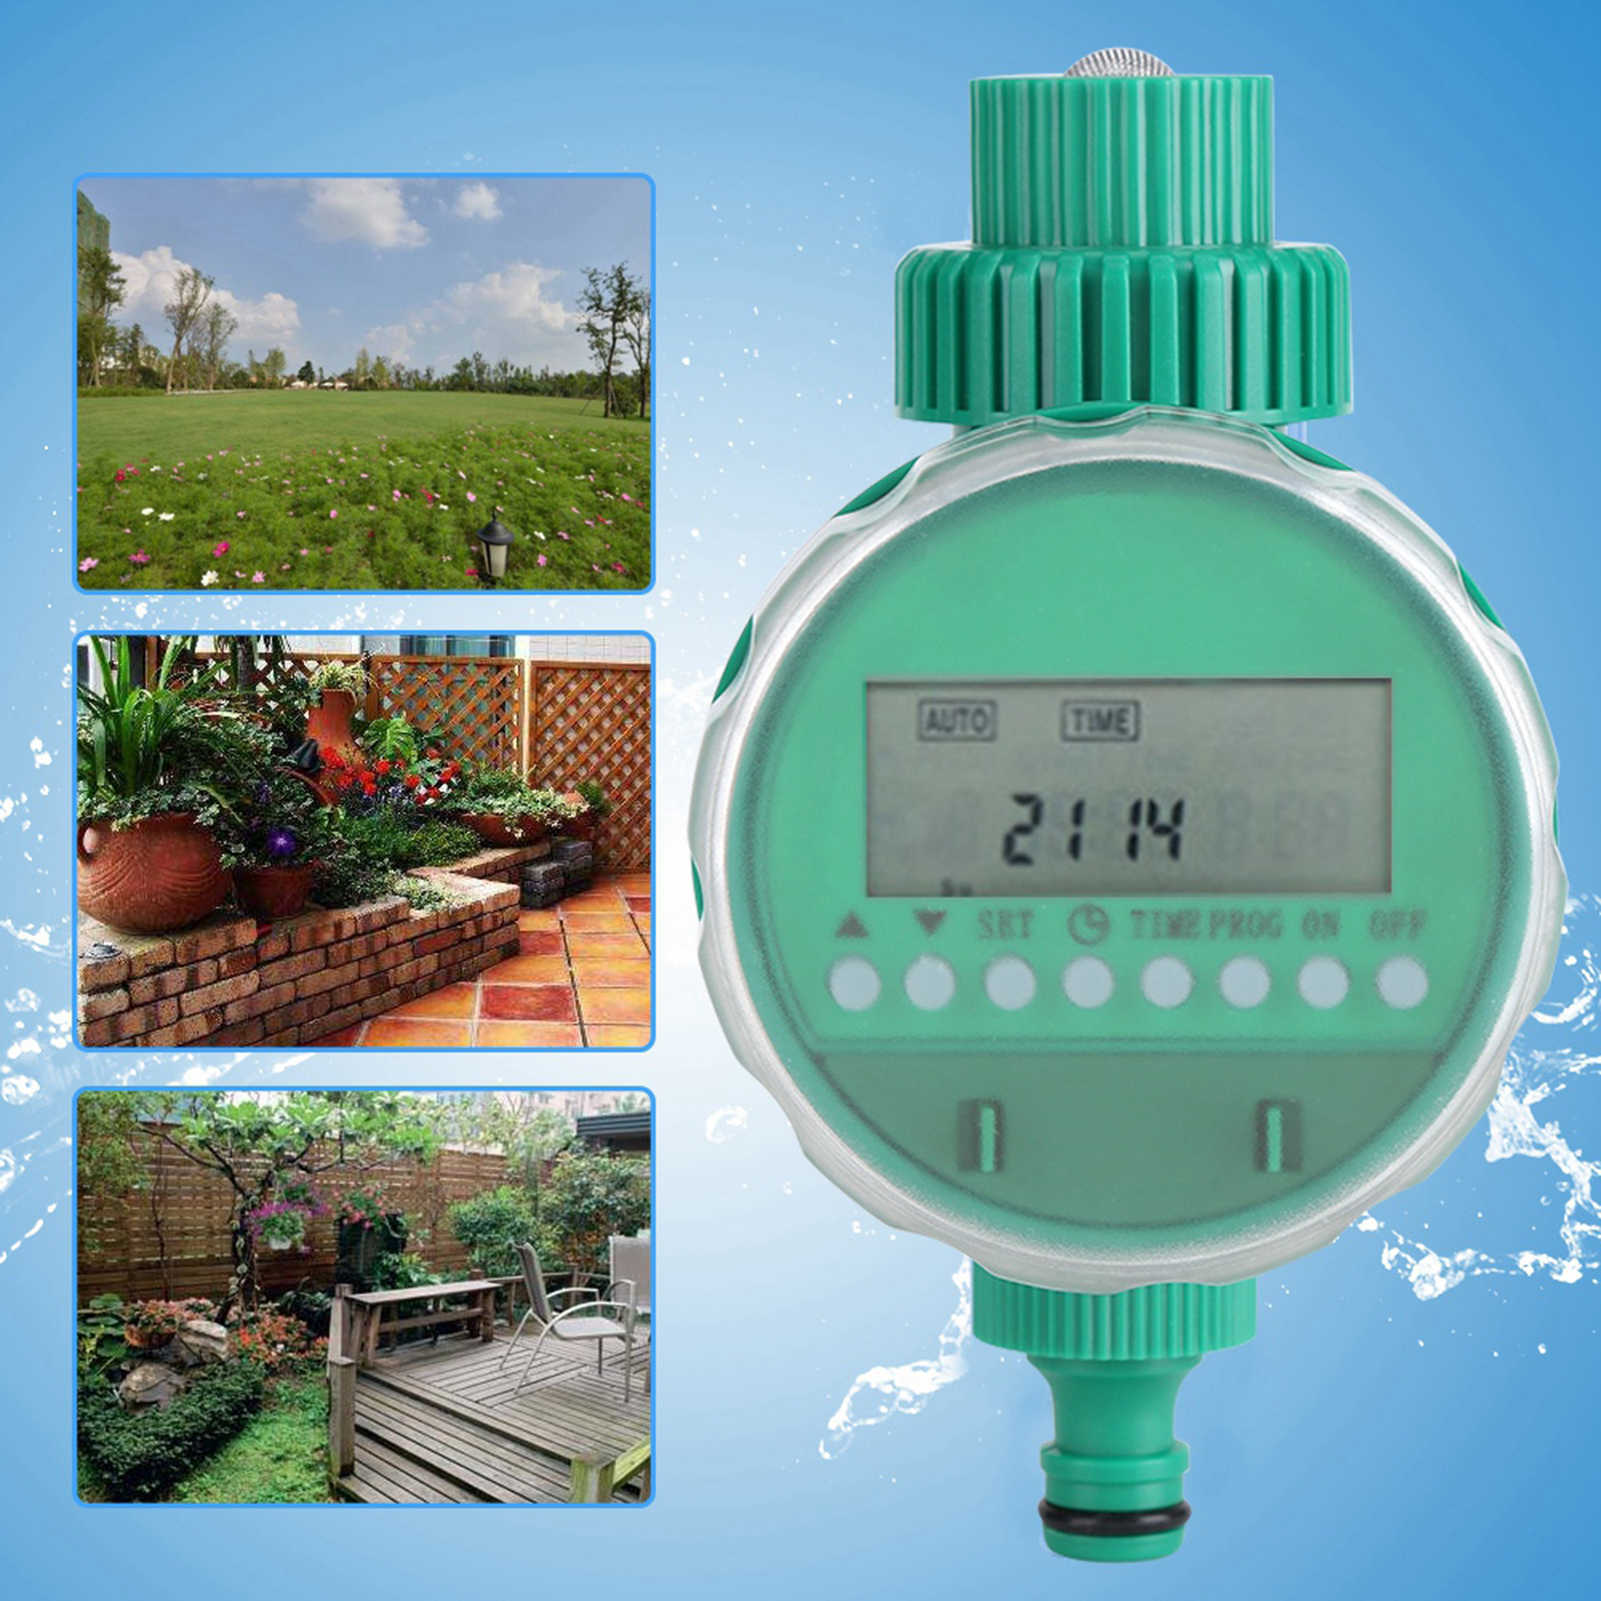 Alinory Irrigation Timer Electronic Smart Garden Auto Water Irrigation Timer Controller Sprinkler with LCD Display